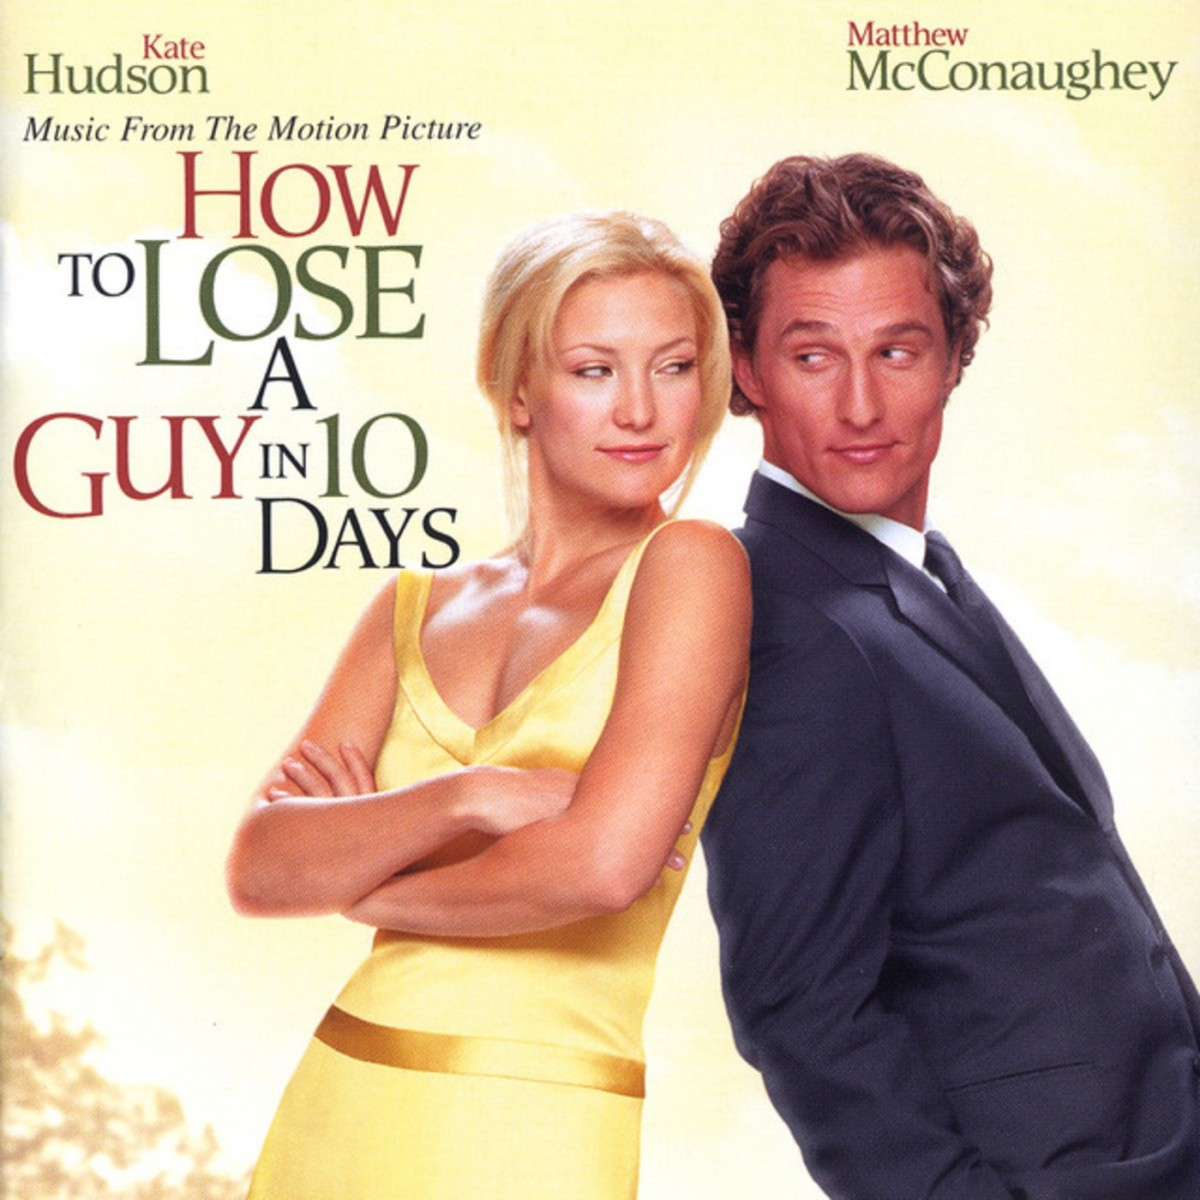 How To Lose A Guy In 10 Days (Music From The Motion Picture) CD - CDVIR 659